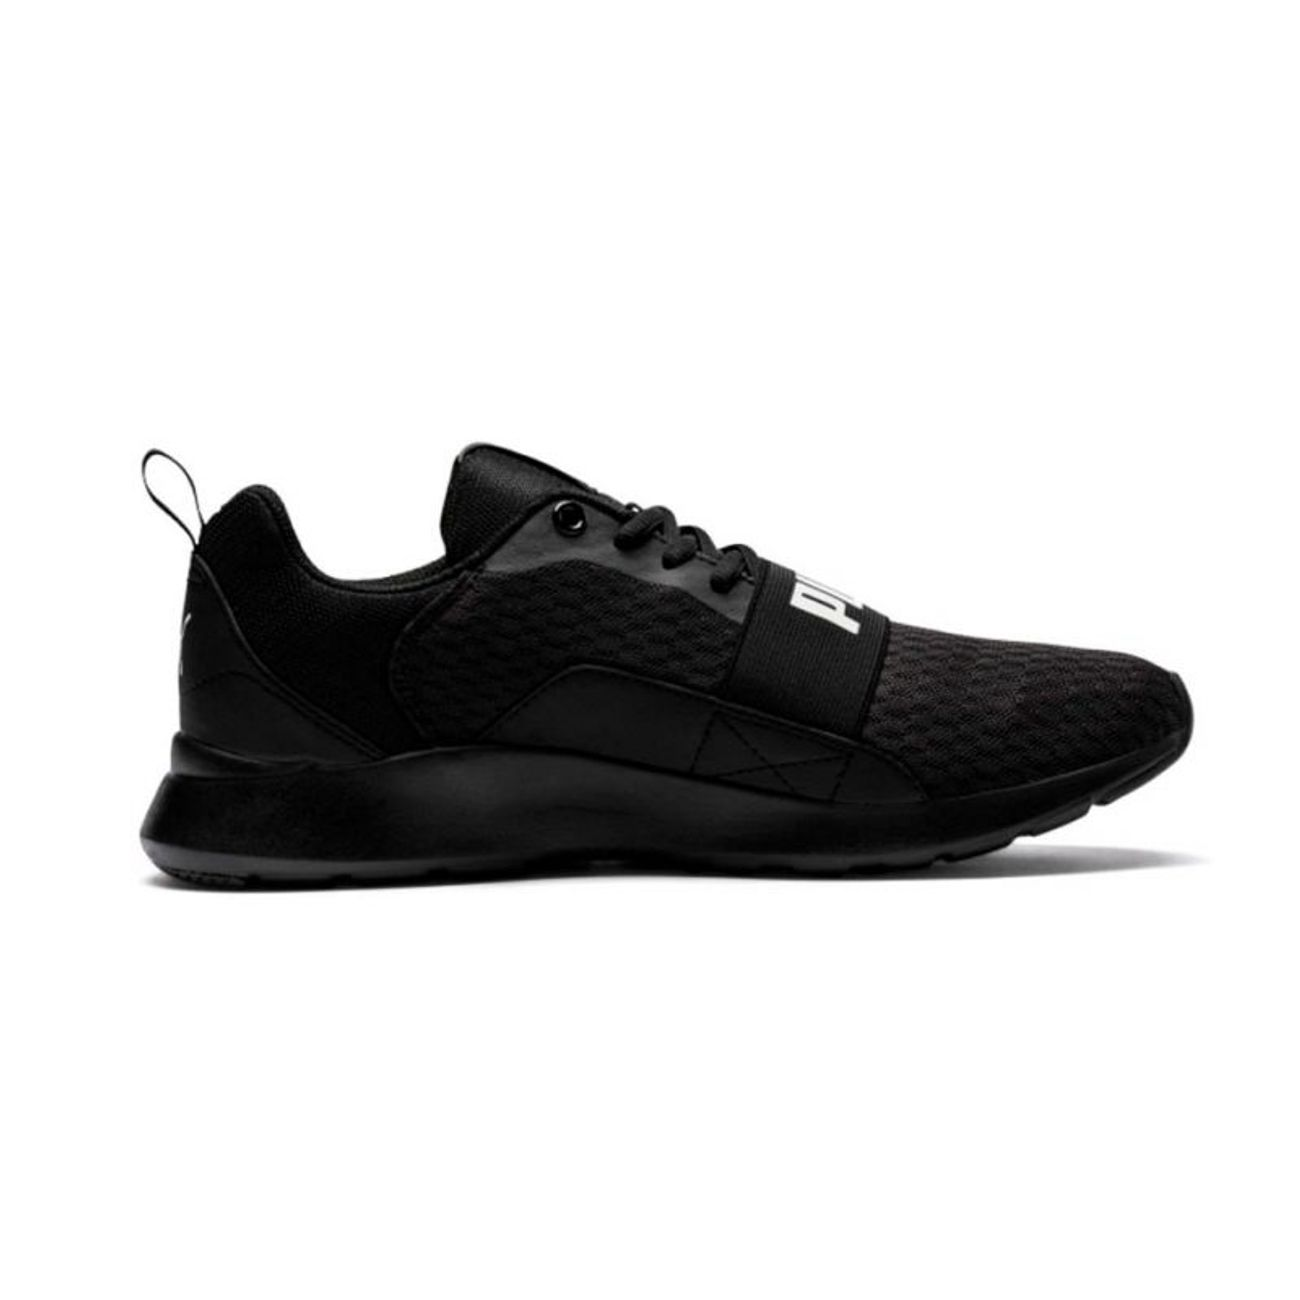 366970 Puma 01 Padel Noir Wired Adulte DeH9bE2IYW